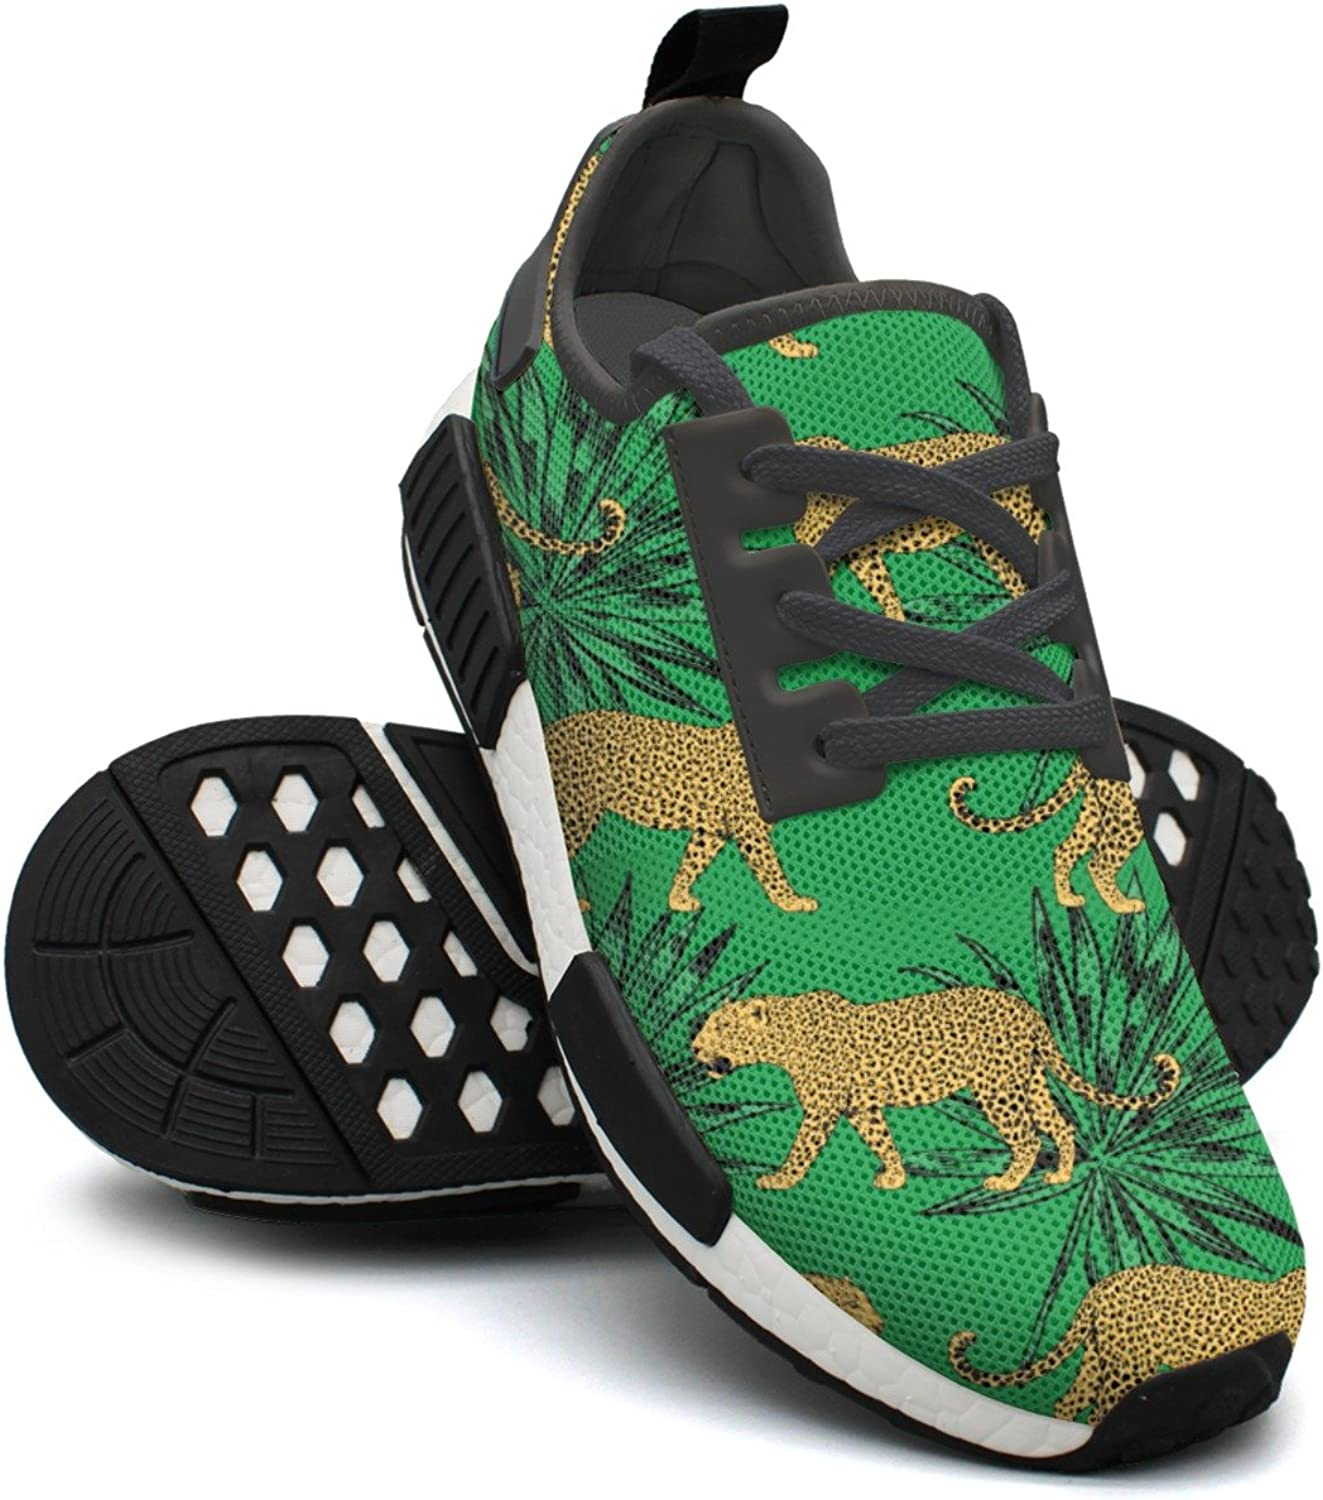 Leopards in colorful Tropical Flowers Fashion Sport Jogging shoes for Women NMD